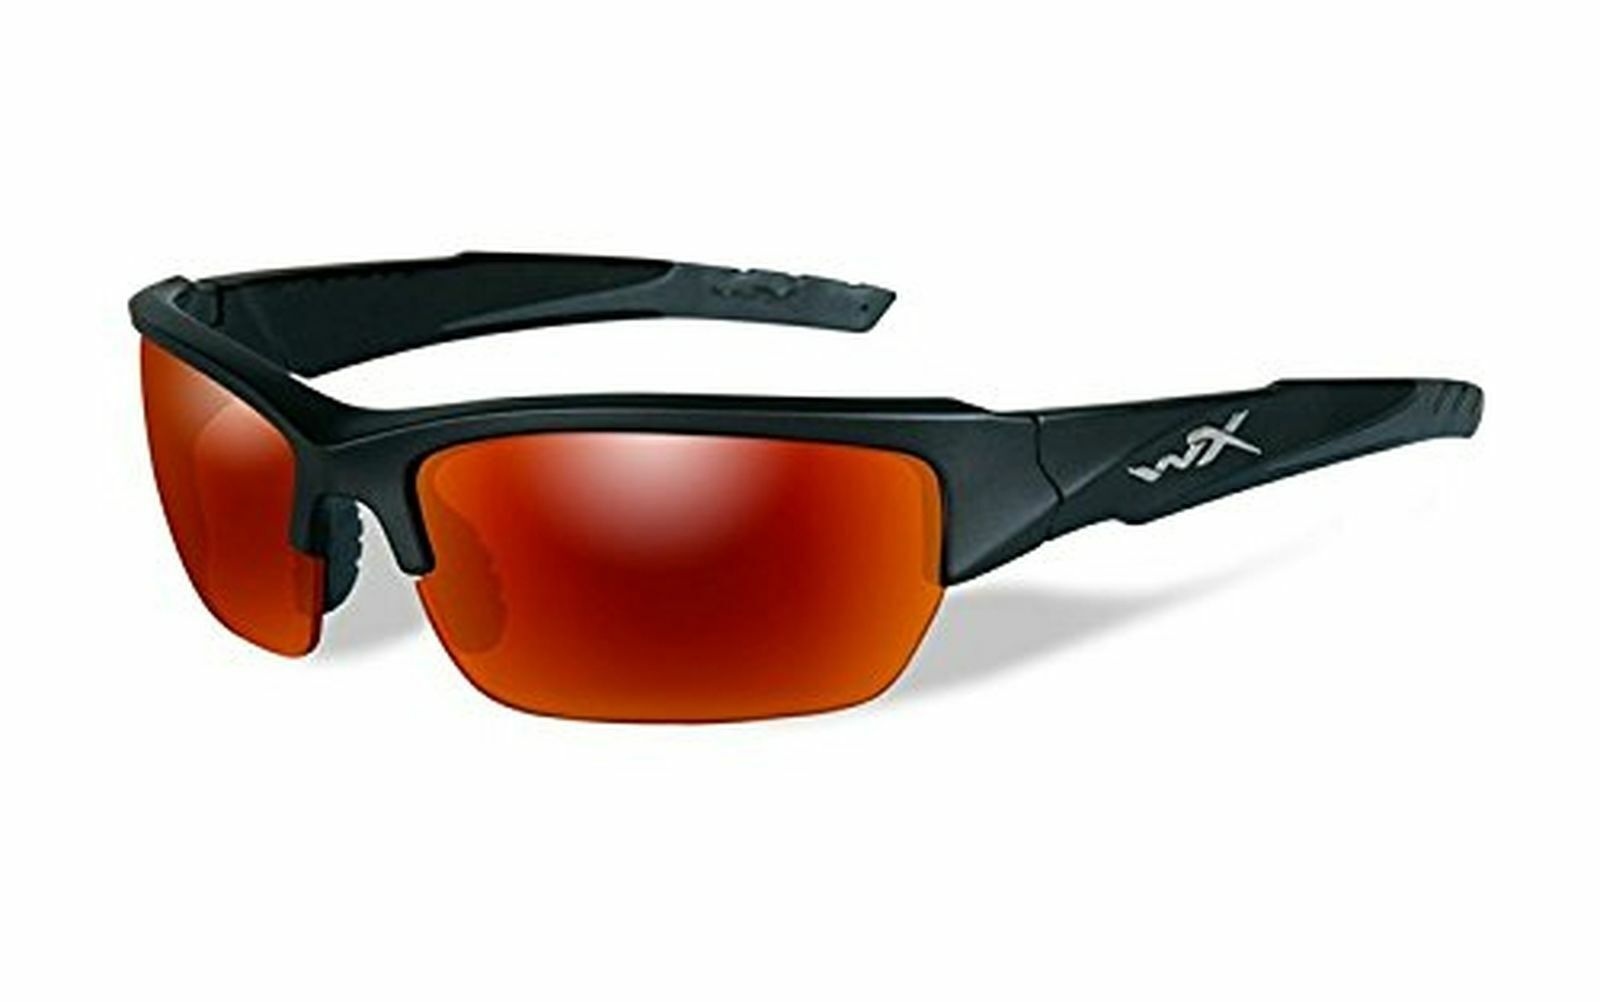 Wiley X Sunglasses Valor CHVAL05 Black Town Tone With